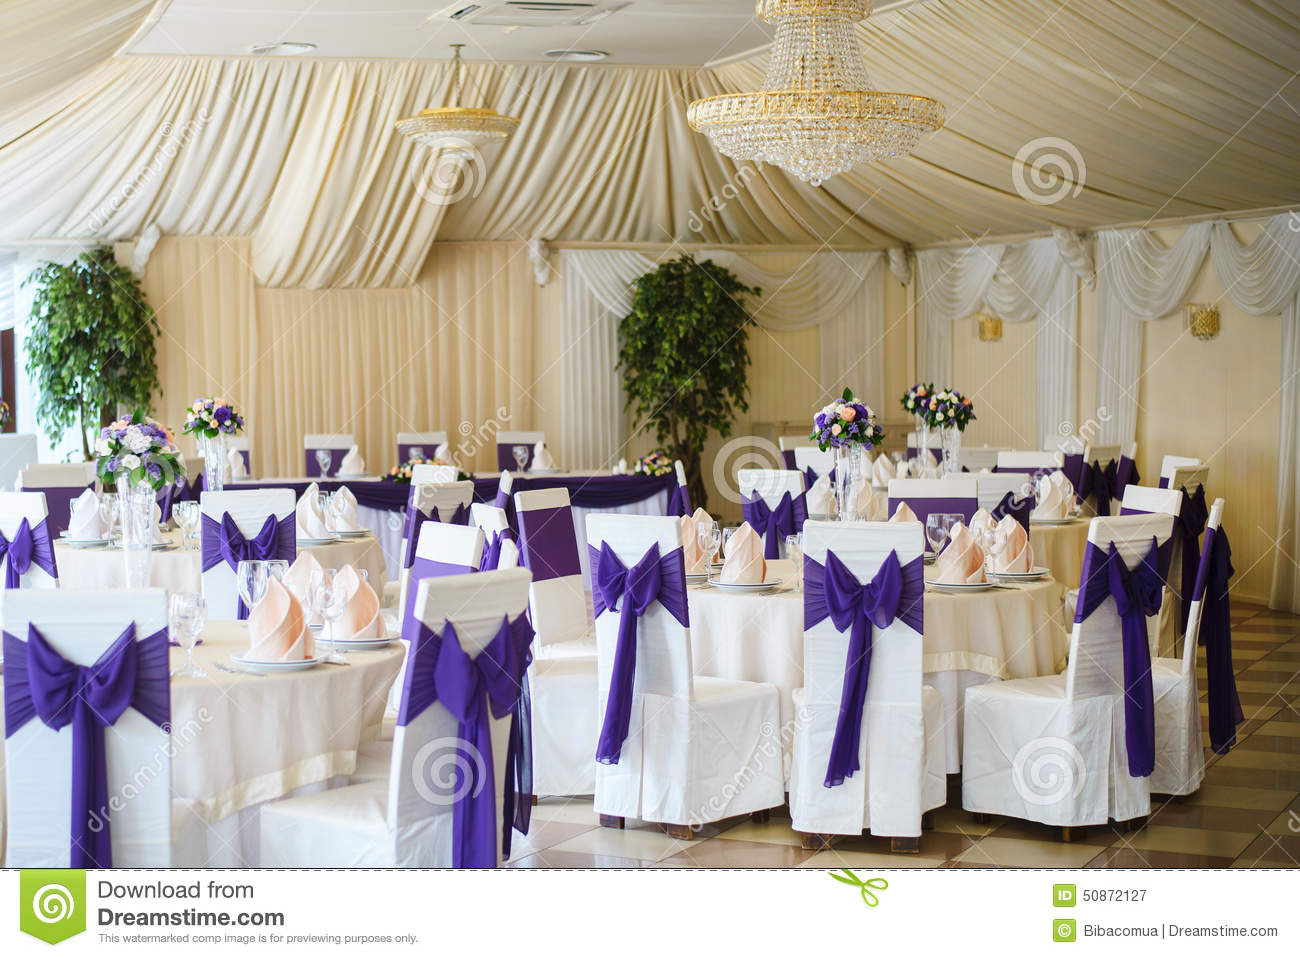 Wedding chair and table setting & Wedding Chair And Table Setting Stock Image - Image of gorgeous ...